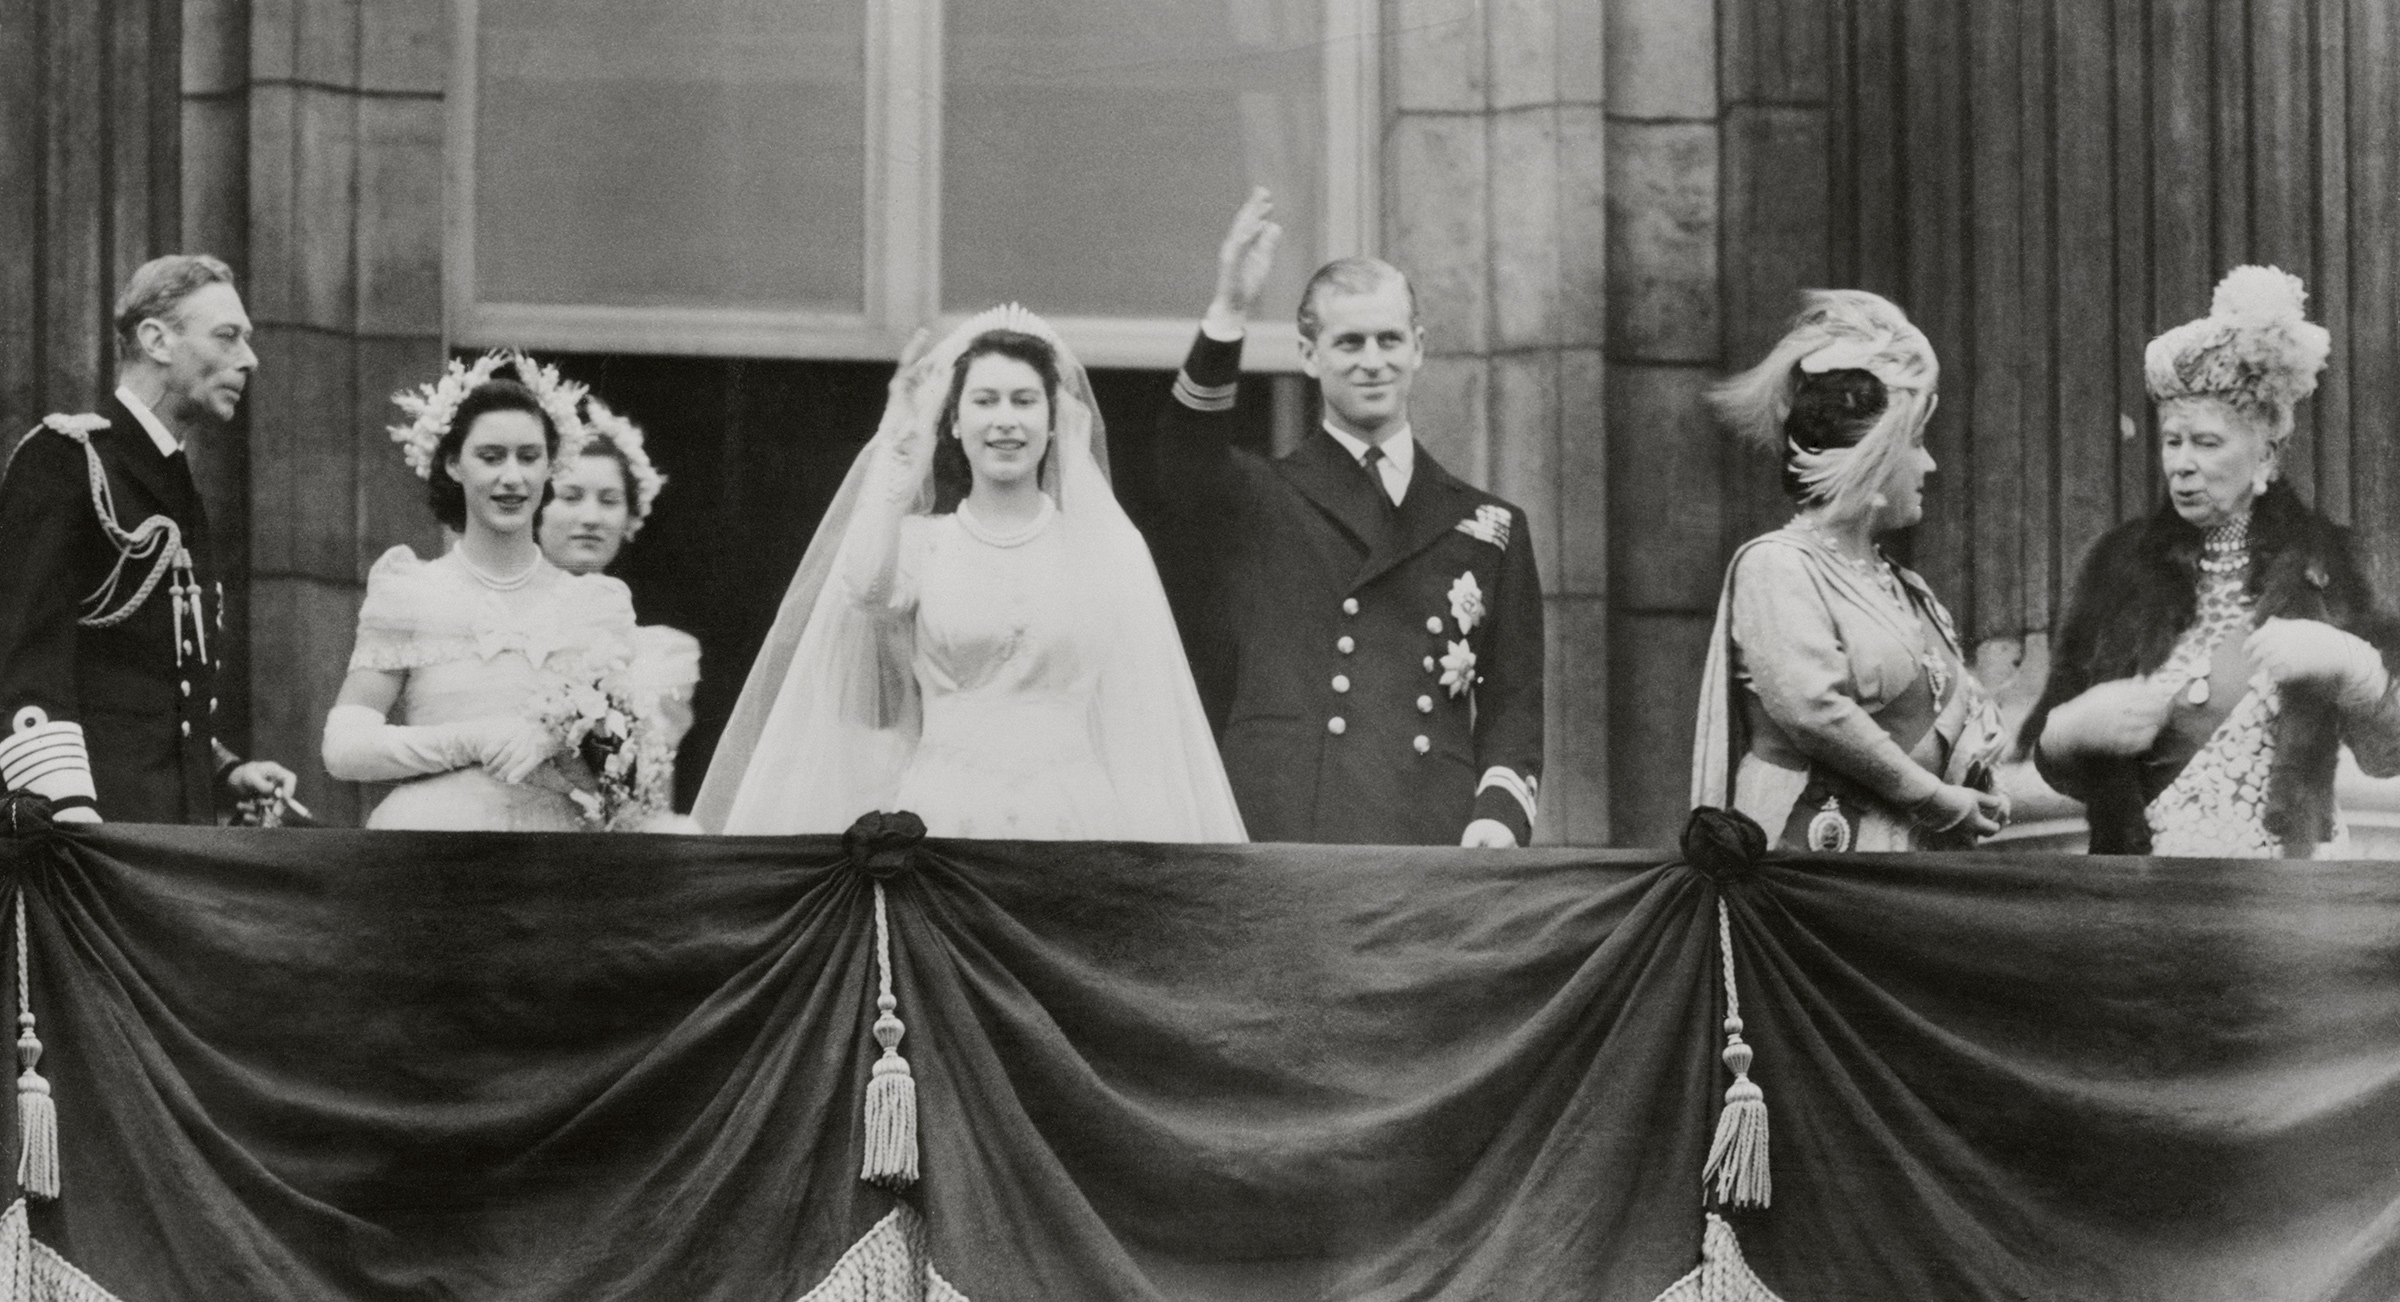 Princess Elizabeth and Philip Mountbatten, Duke of Edinburgh, wave from a balcony at Buckingham Palace in London, shortly after their wedding on Nov. 20, 1947.